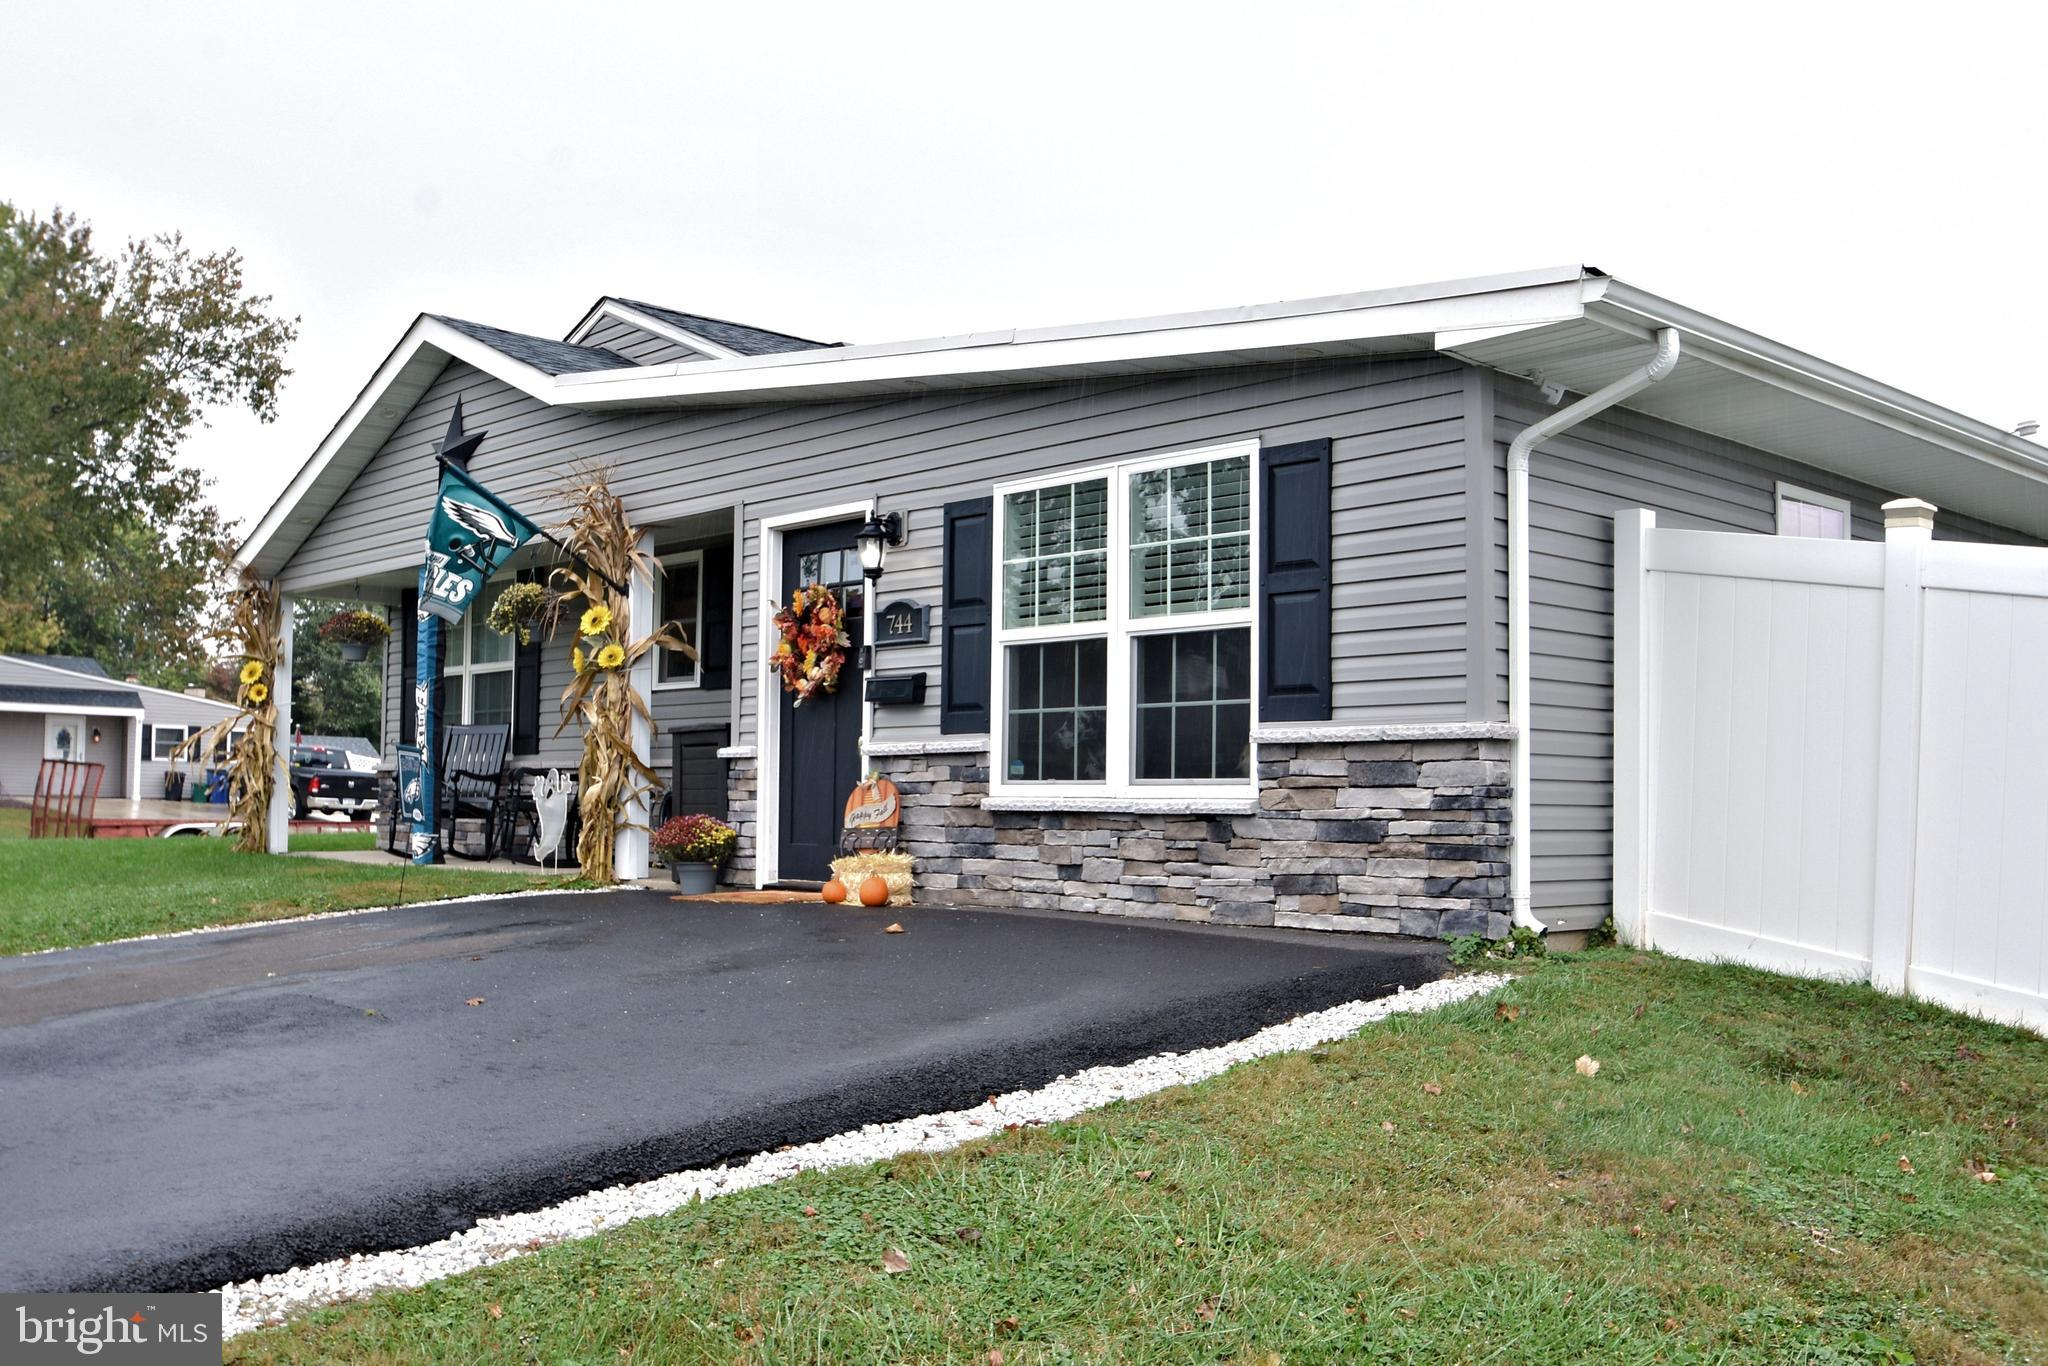 744 S OLDS BOULEVARD, FAIRLESS HILLS, PA 19030